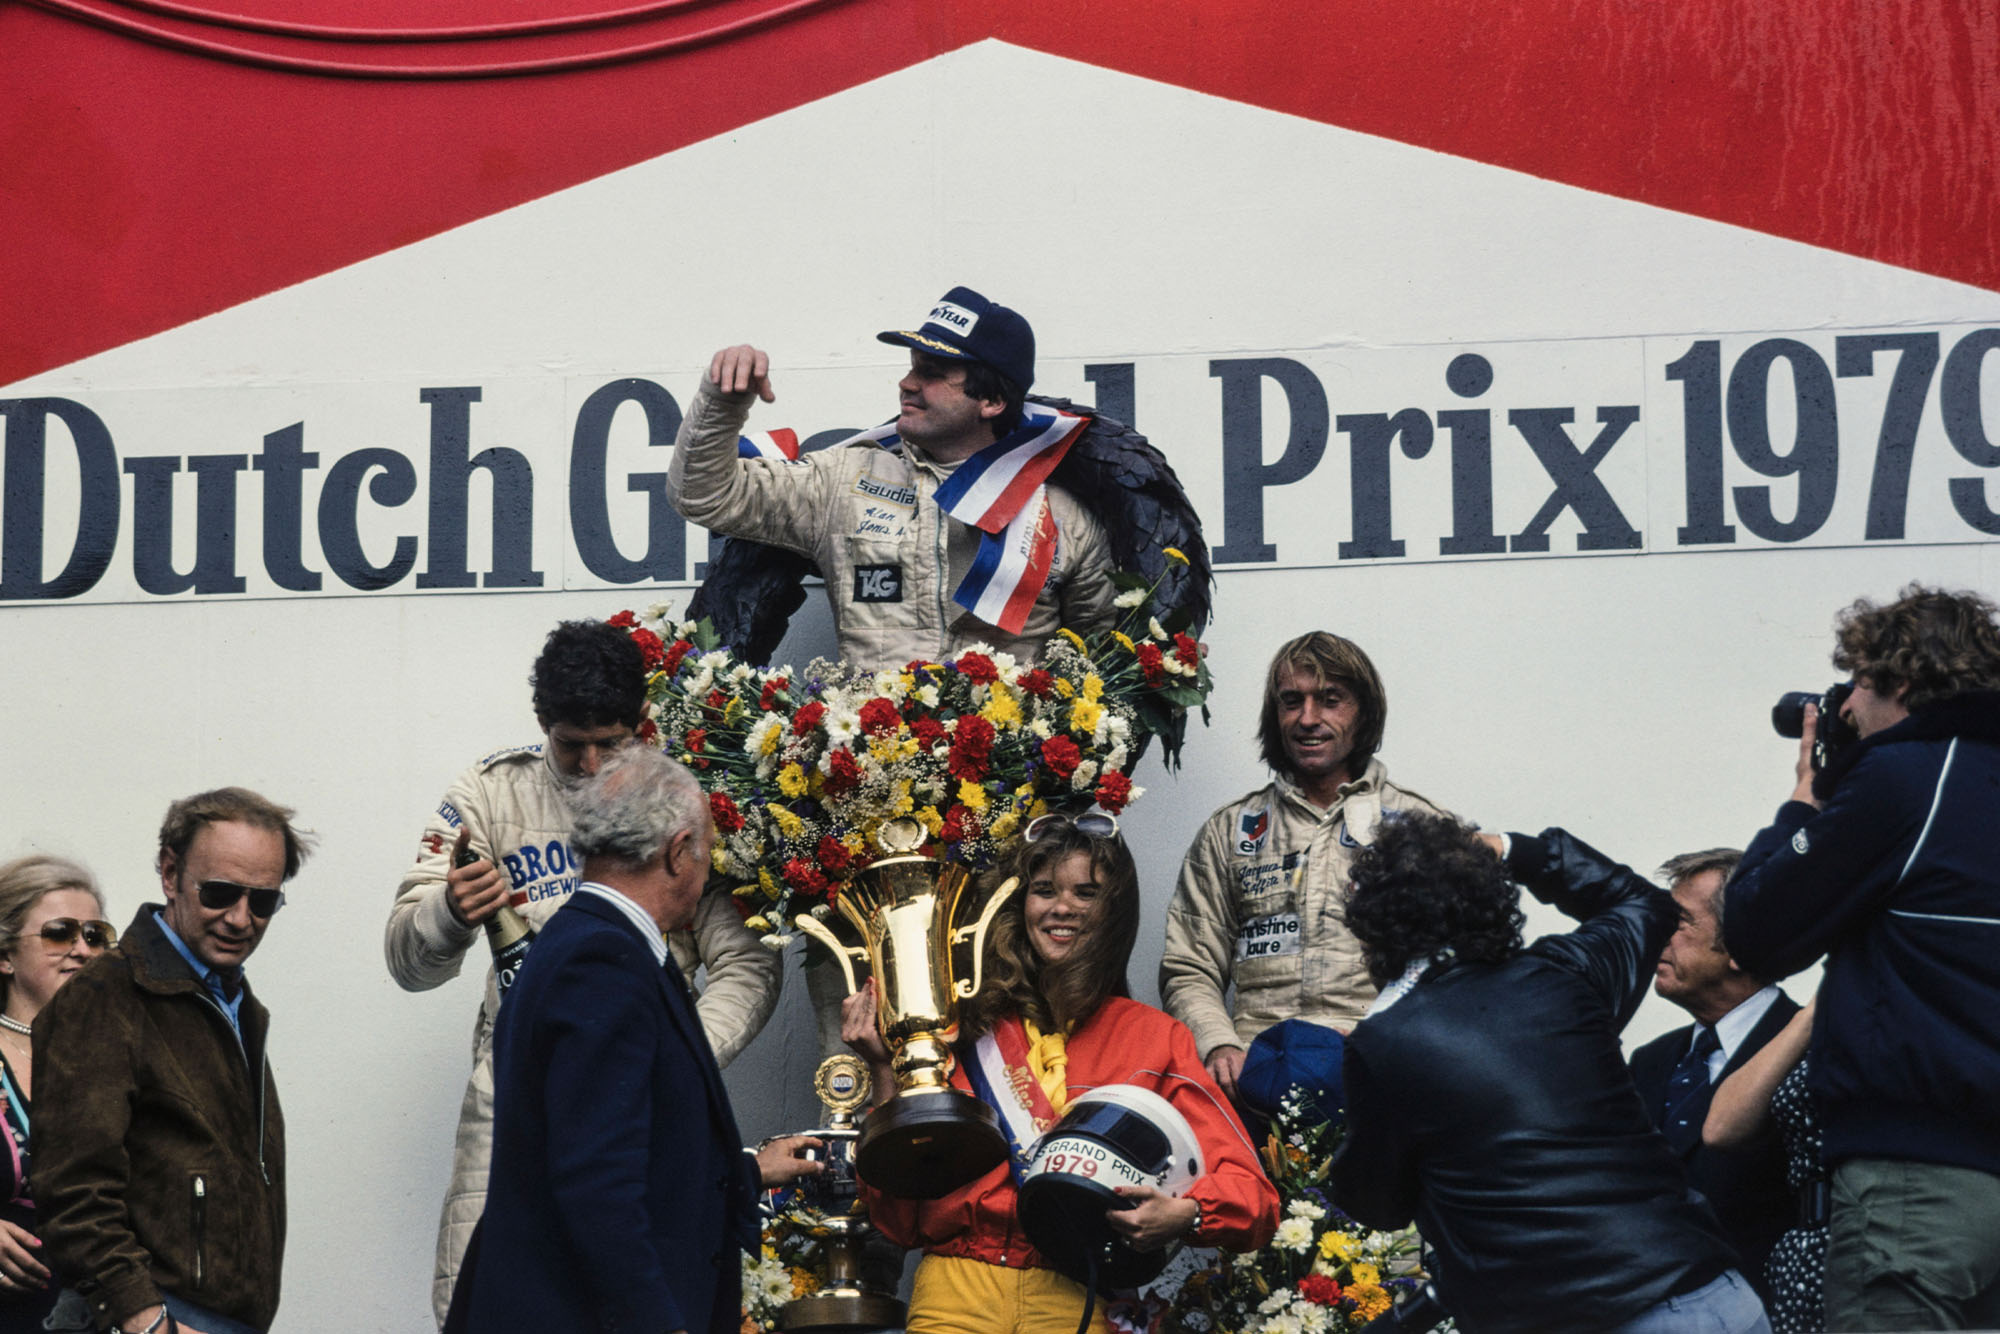 1979 Dutch GP podium